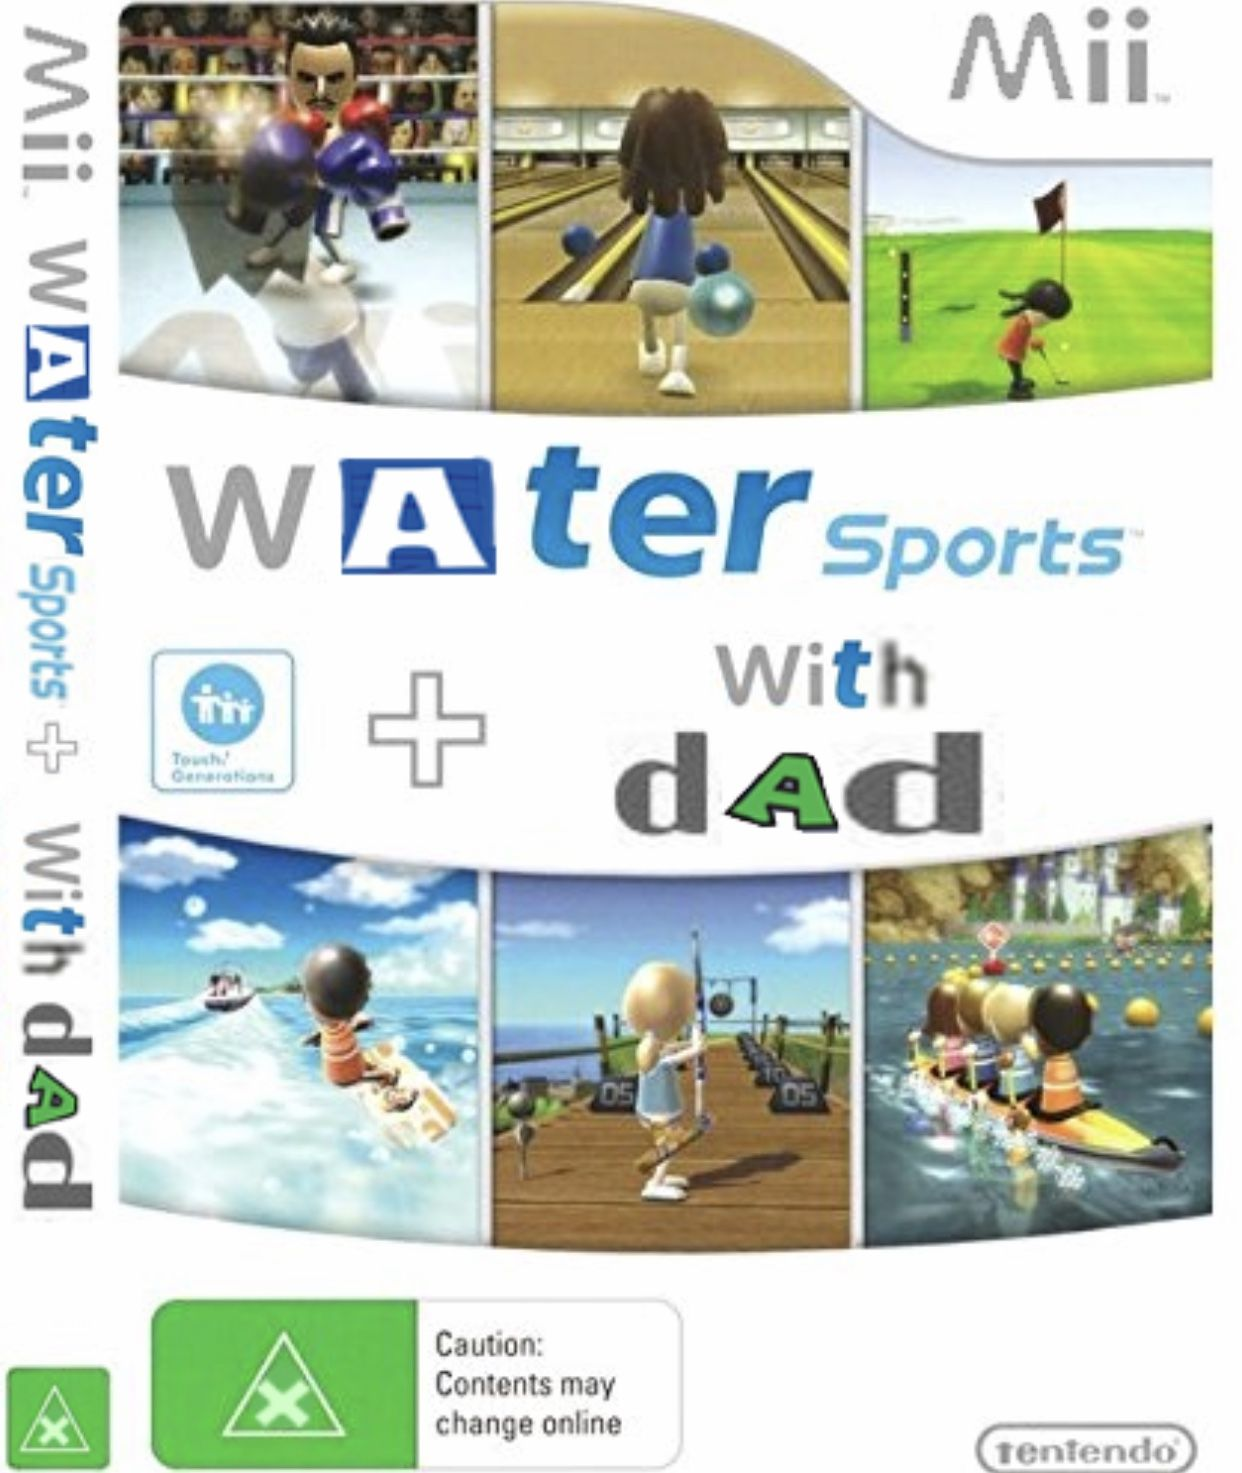 Pin by Aidan Moore on Wii Wii sports, Wii sports resort